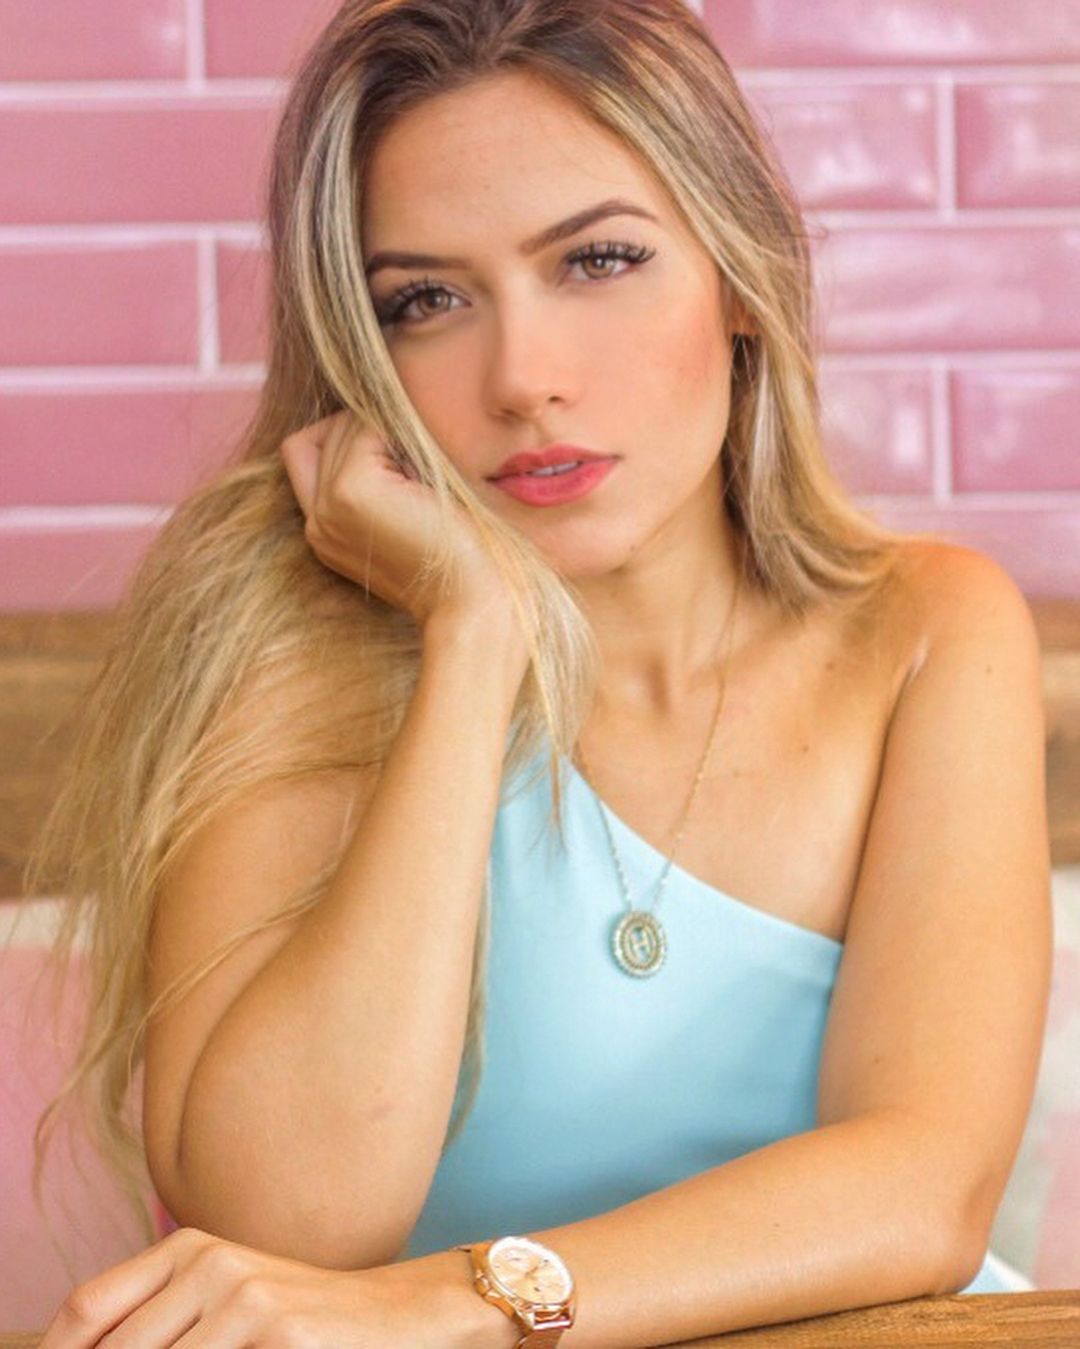 hyalina lins, miss acre mundo 2018. 32688610